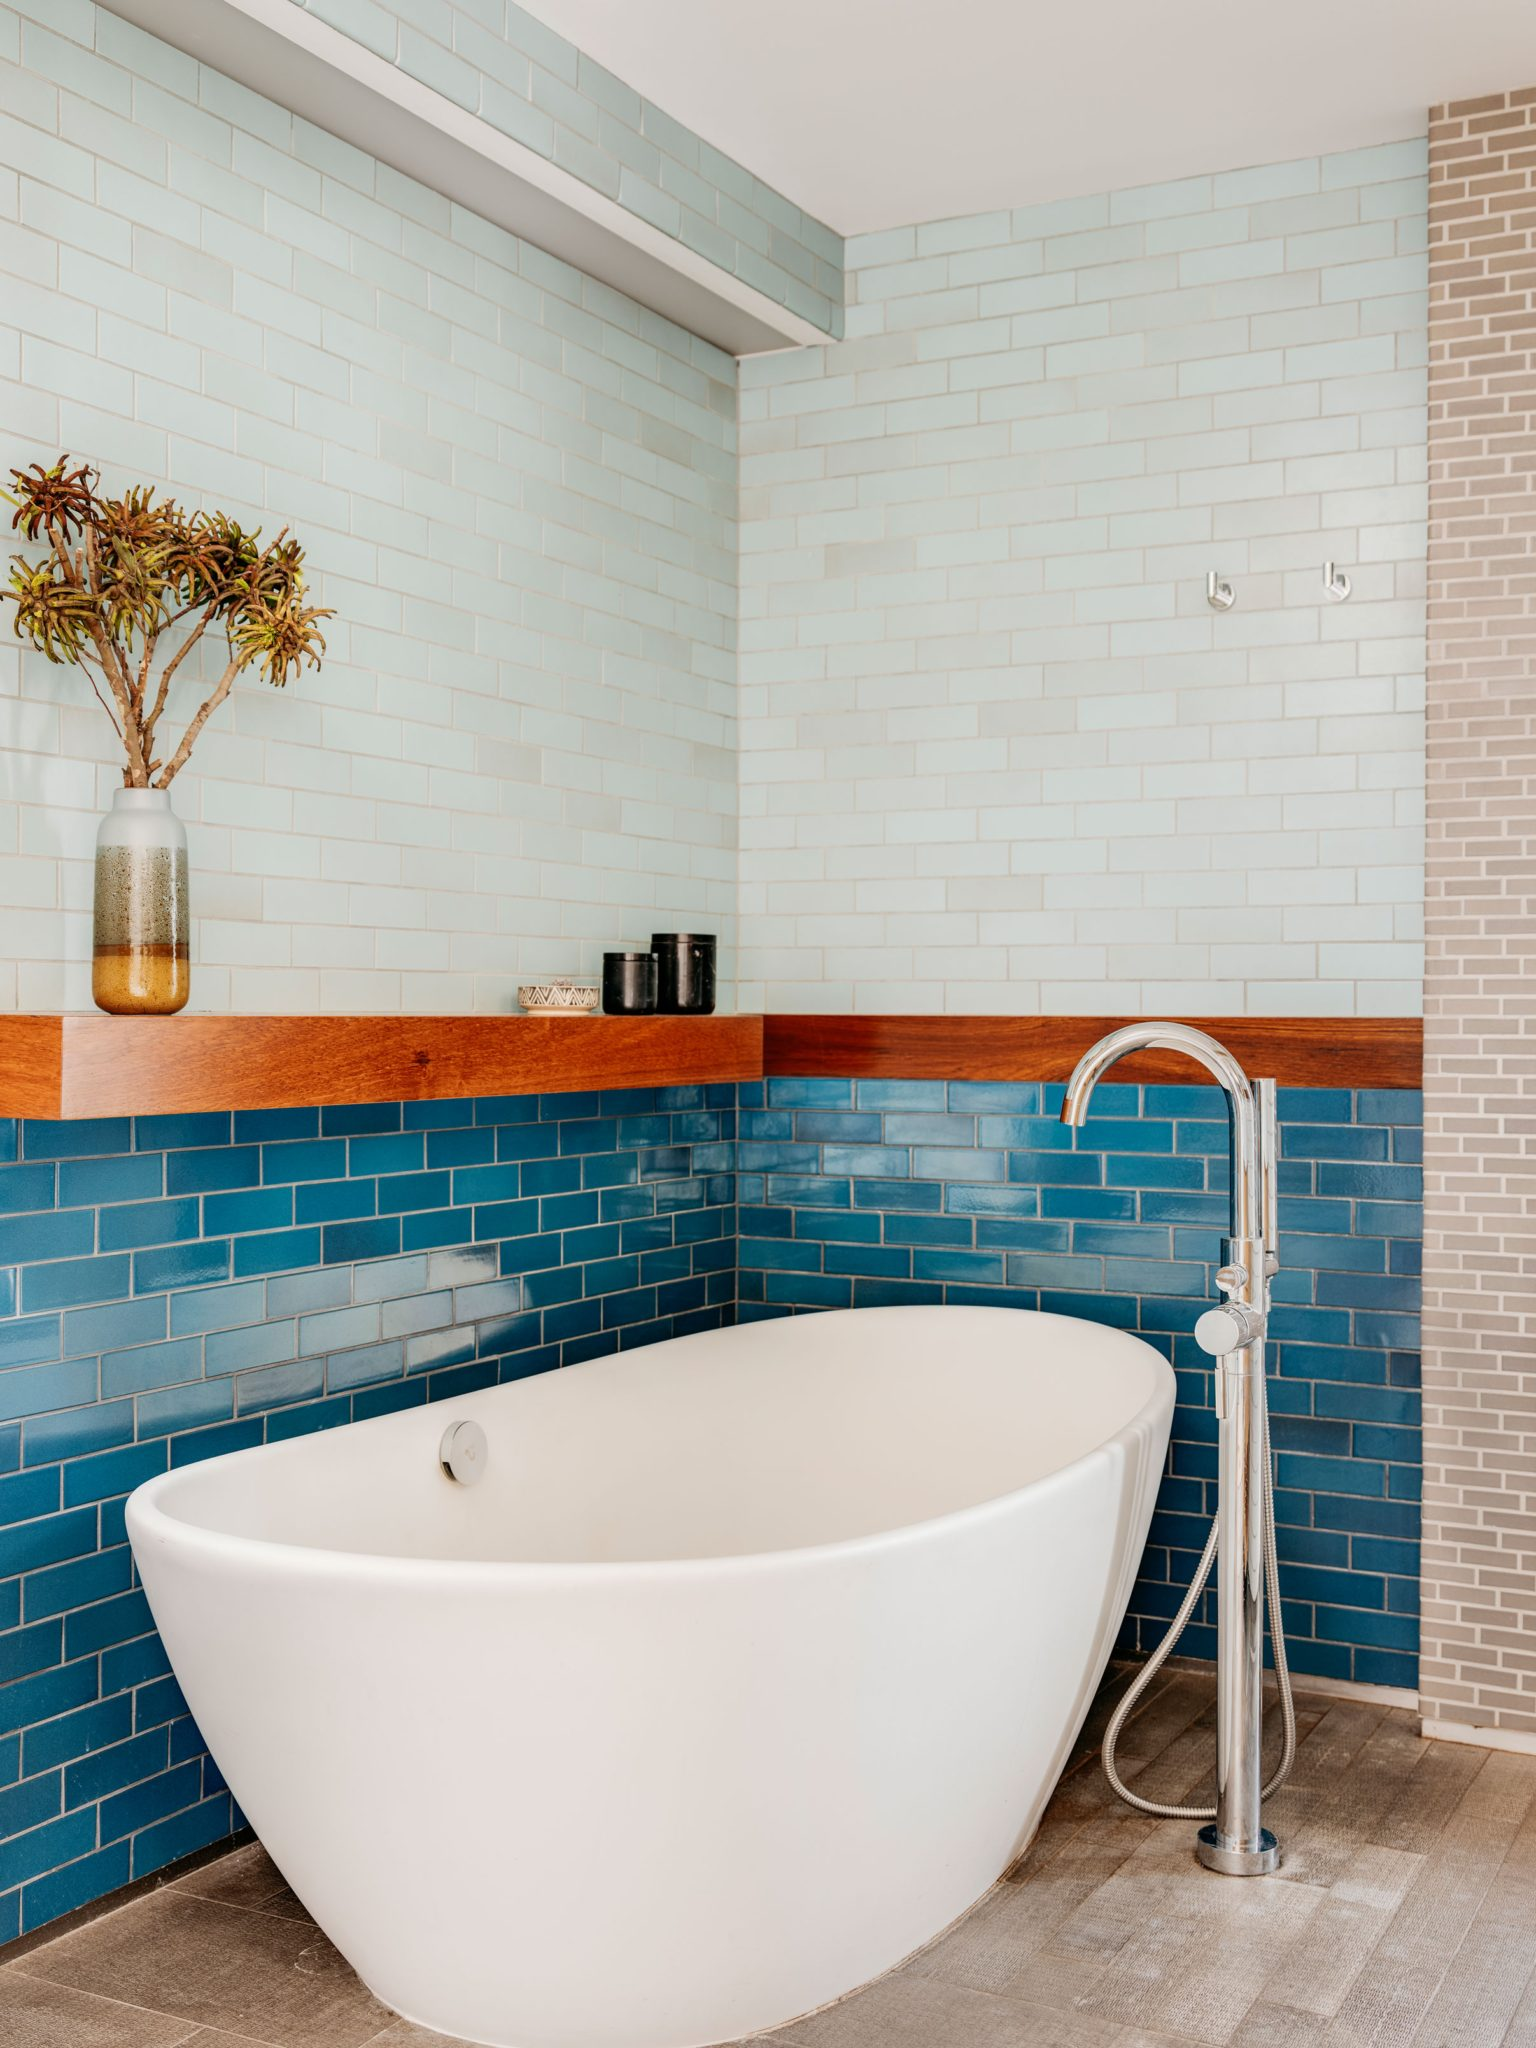 The freestanding tub is set upon stone flooring. Carefully placed custom shelving leans out over the tub.